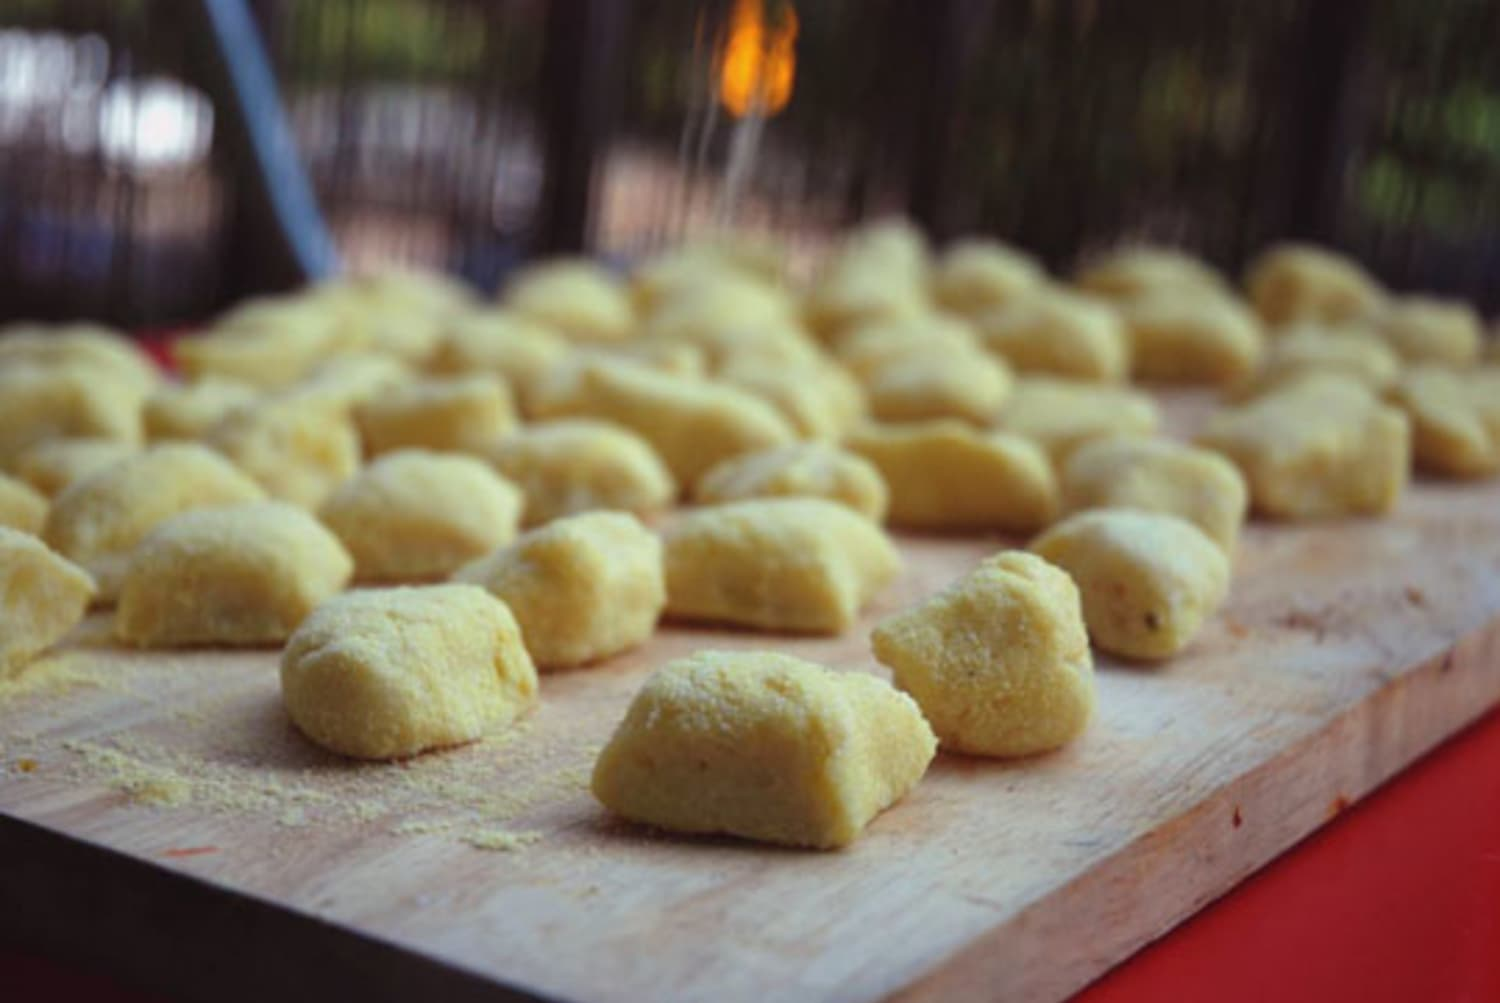 Weekend Project: Make Gnocchi